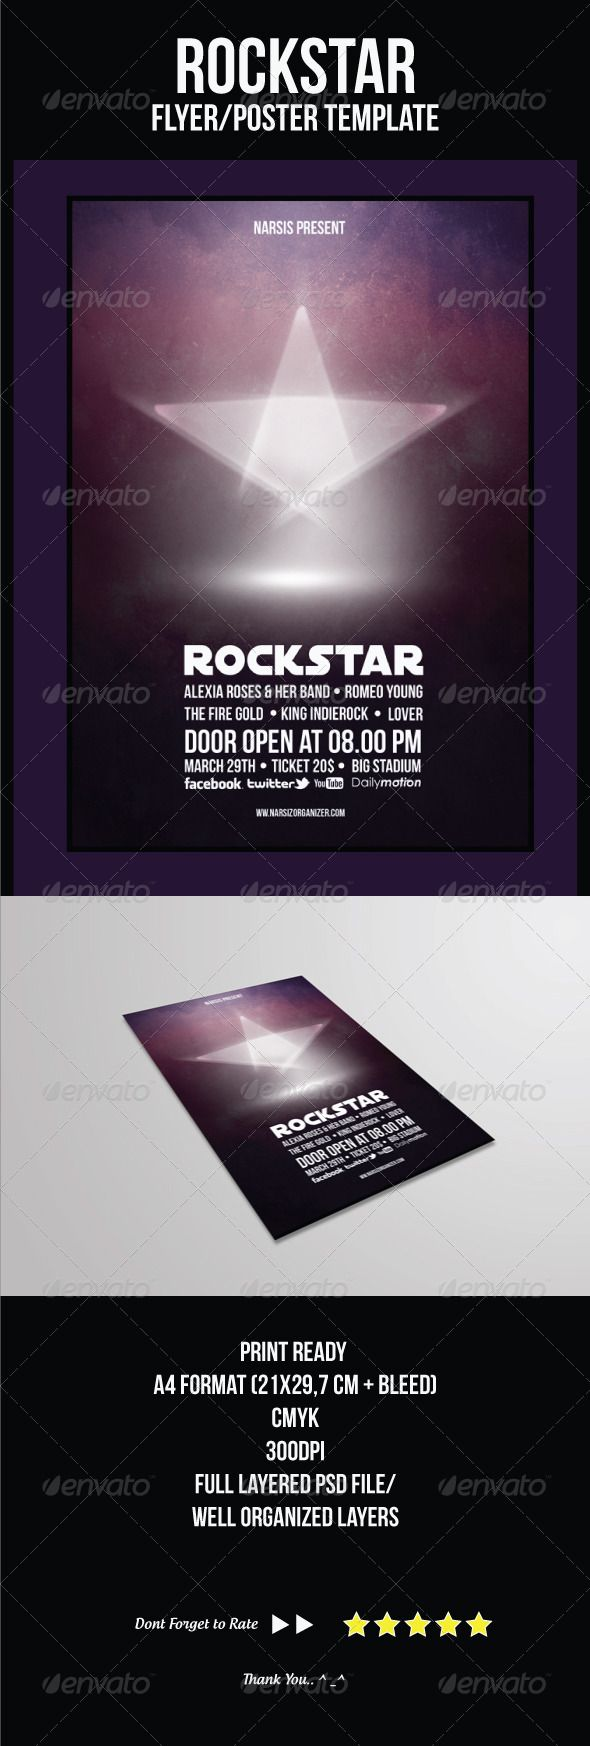 Rock Star Flyer Template | Flyer template, Template and Rock